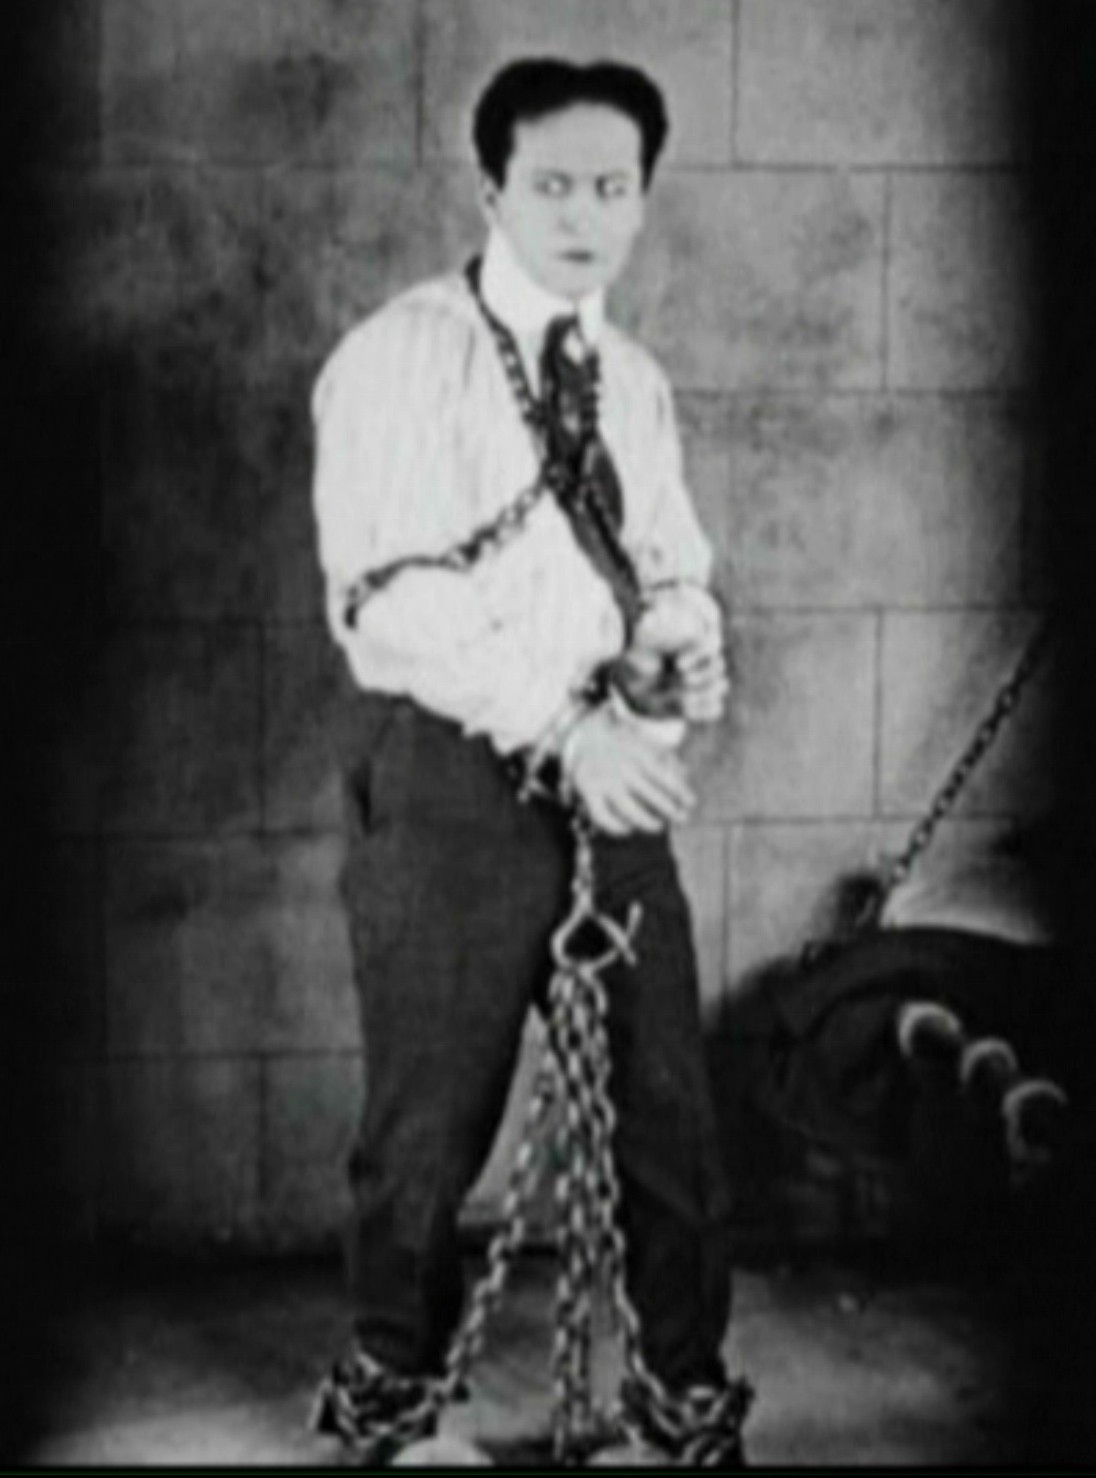 a biography of harry houdini a performer Famed magician/entertainer harry houdini was born erich weisz on march 24, 1874, in budapest, hungary one of seven children born to a jewish rabbi and his wife, erich moved with his family as a child to appleton, wisconsin, where he later claimed he was born.